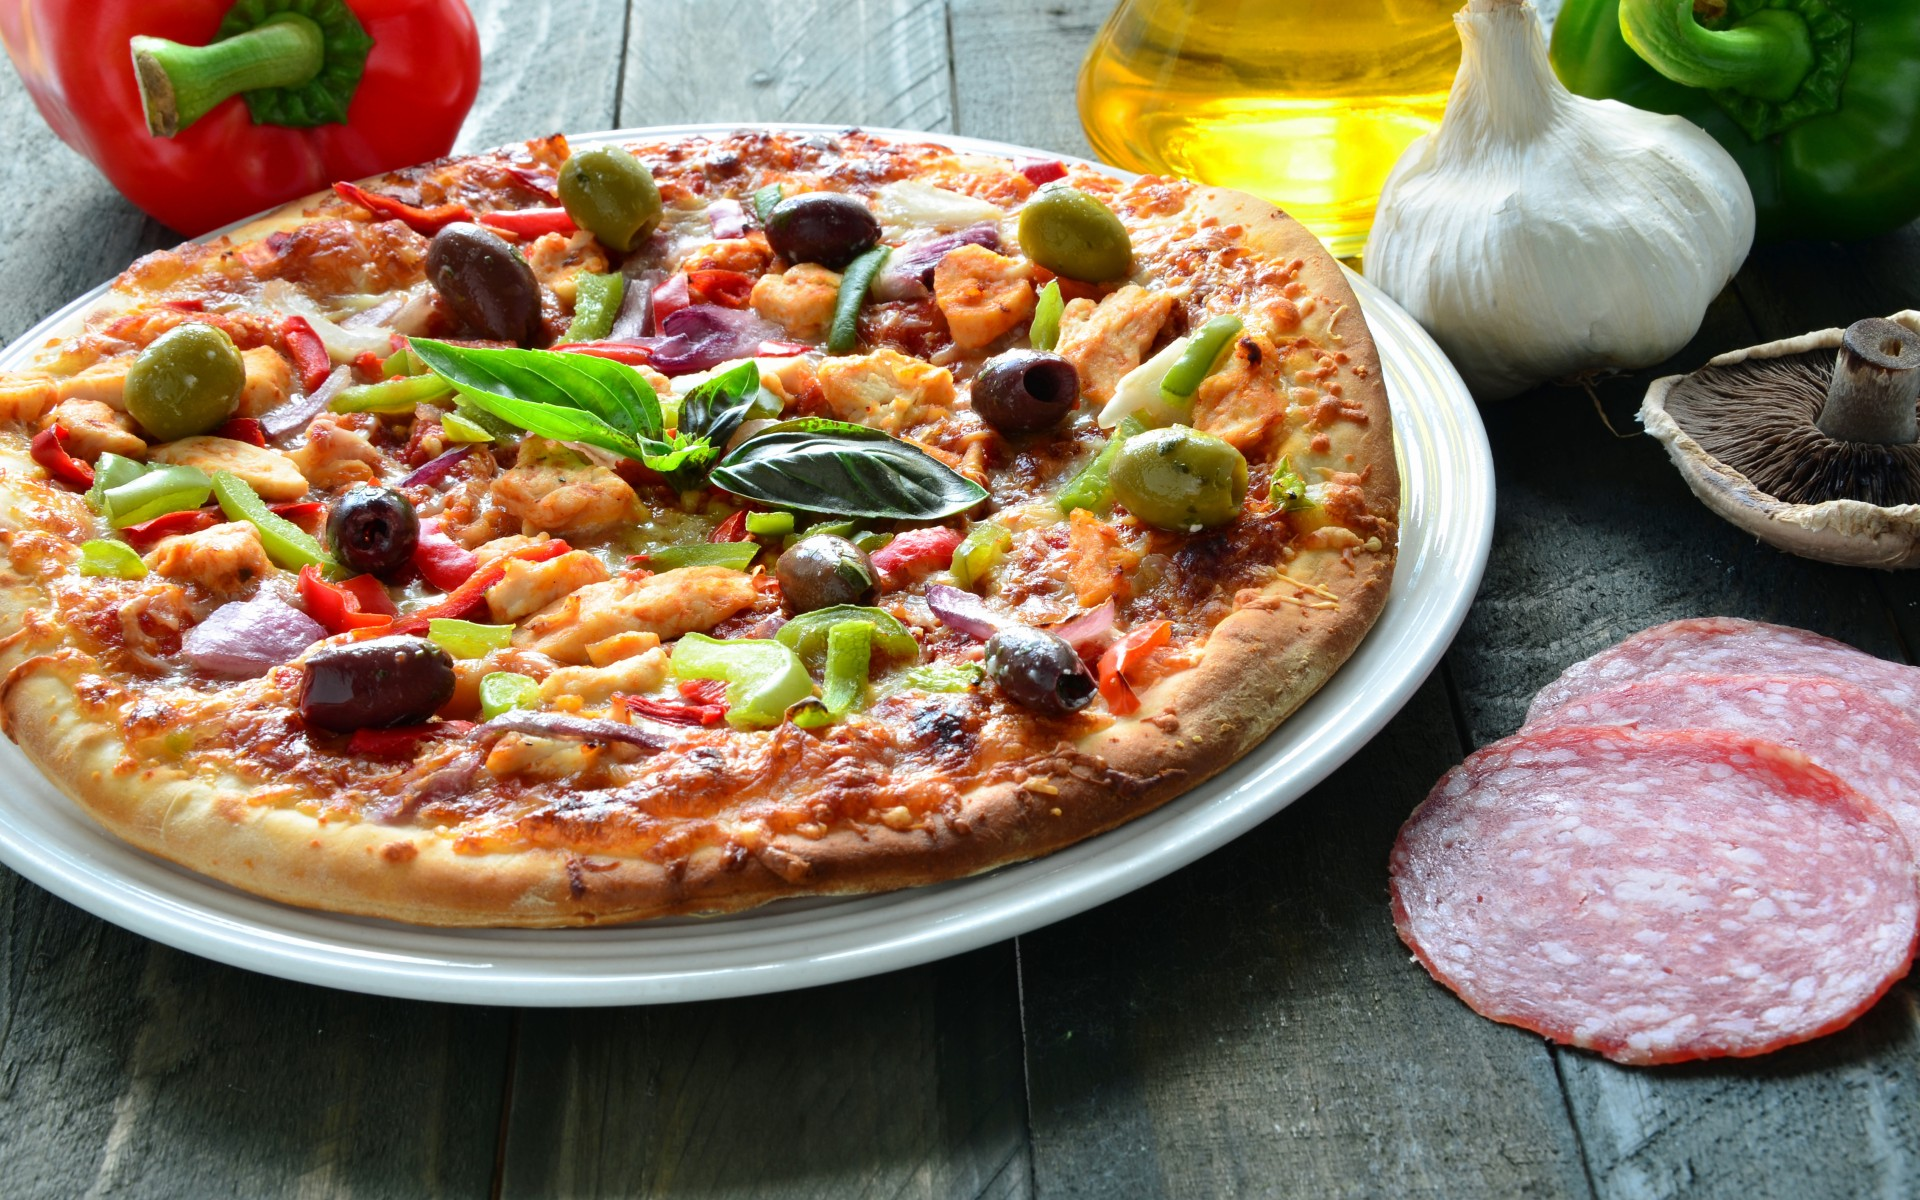 Large pizza on a plate